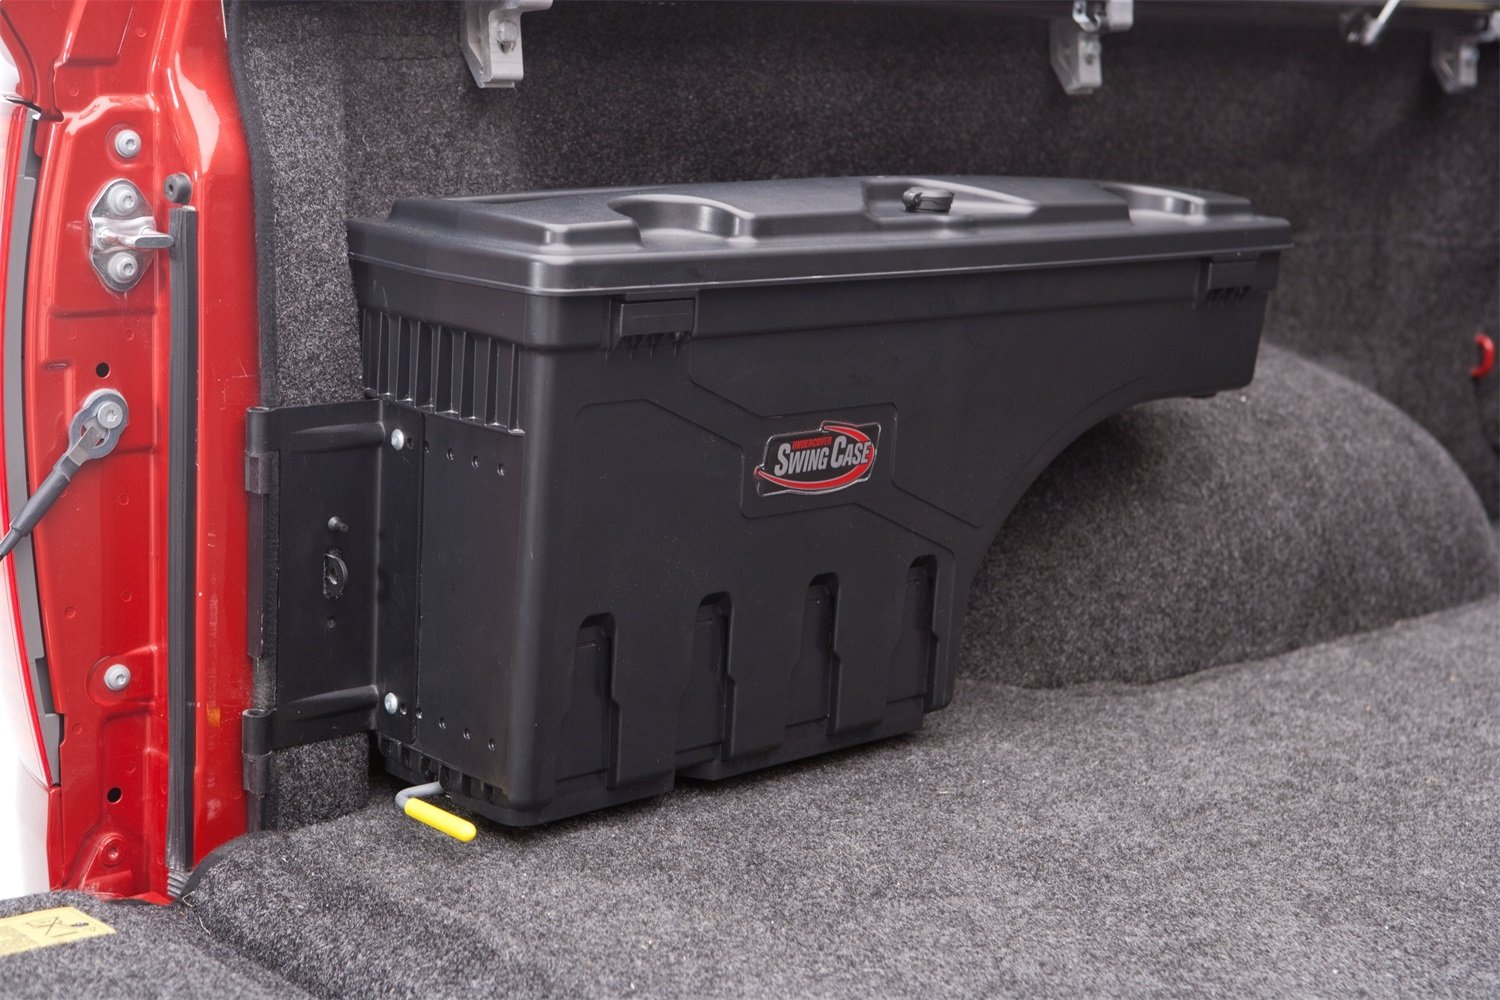 UnderCover SwingCase Truck Storage Box | SC401D | fits 2005-2019 Toyota Tacoma Drivers Side